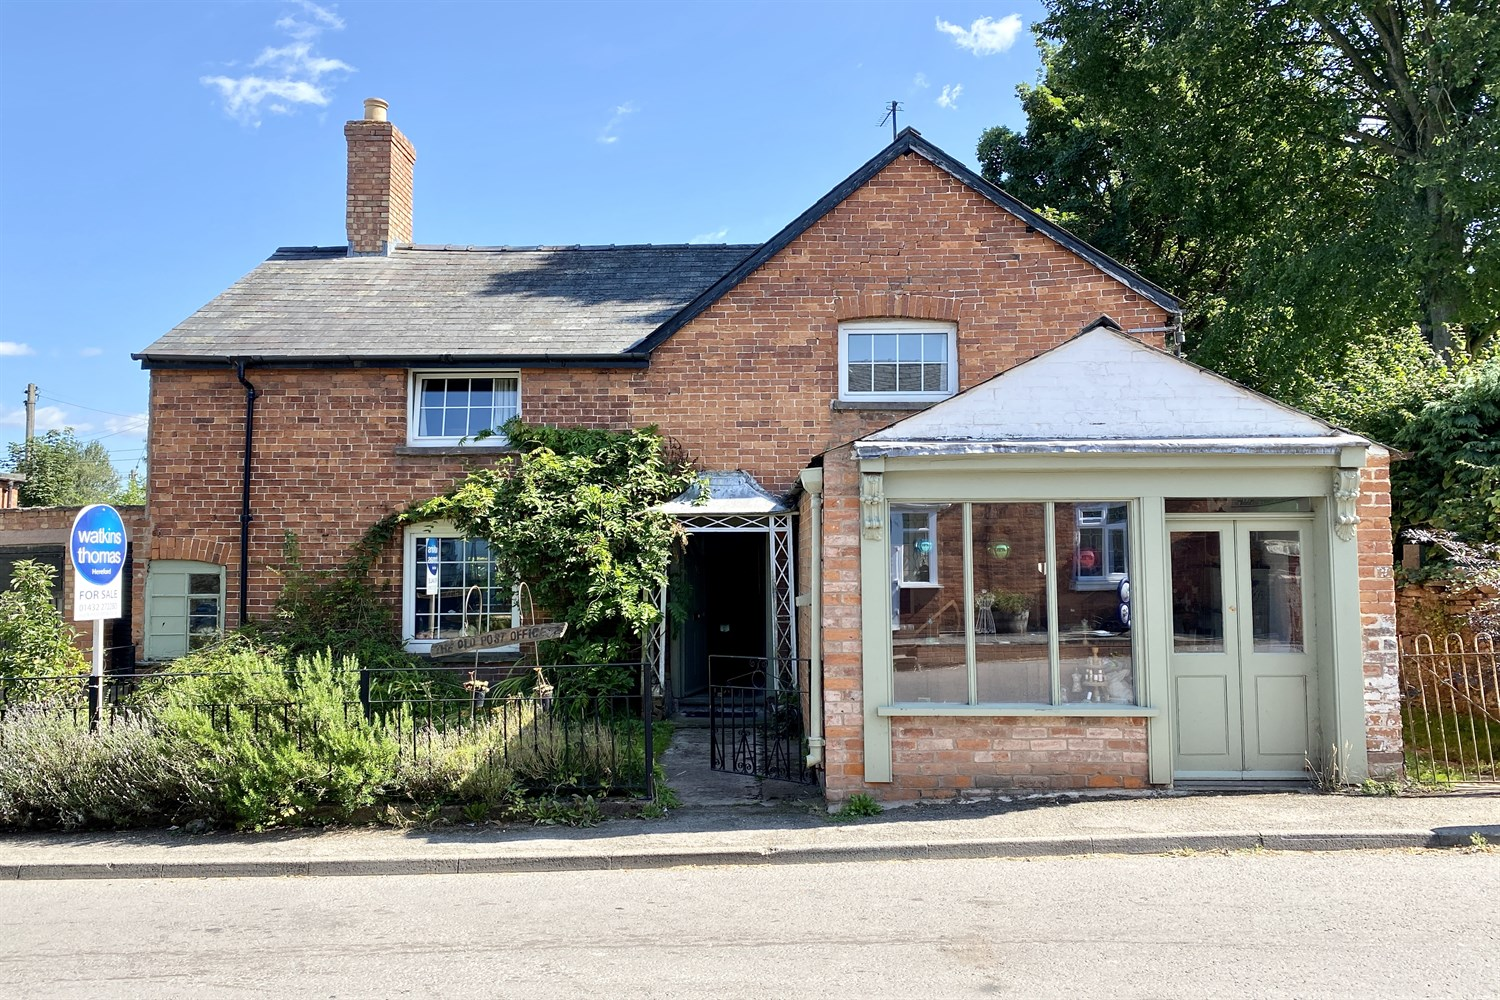 The Old Post Office, Madley, Hereford